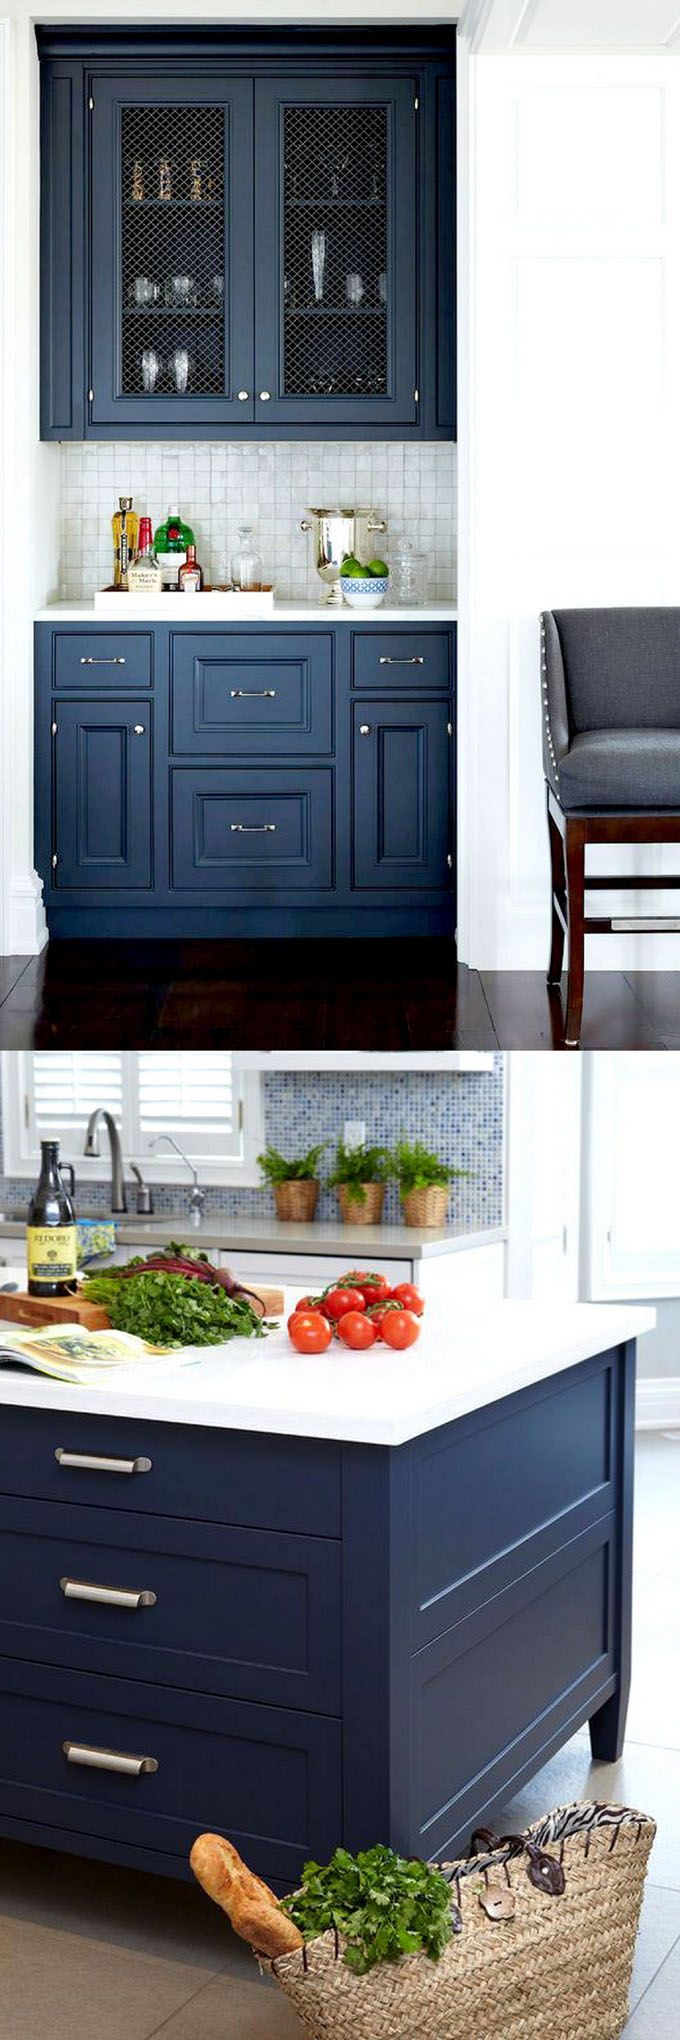 Painted Kitchen Cabinets best 20+ painting kitchen cabinets ideas on pinterest | painting